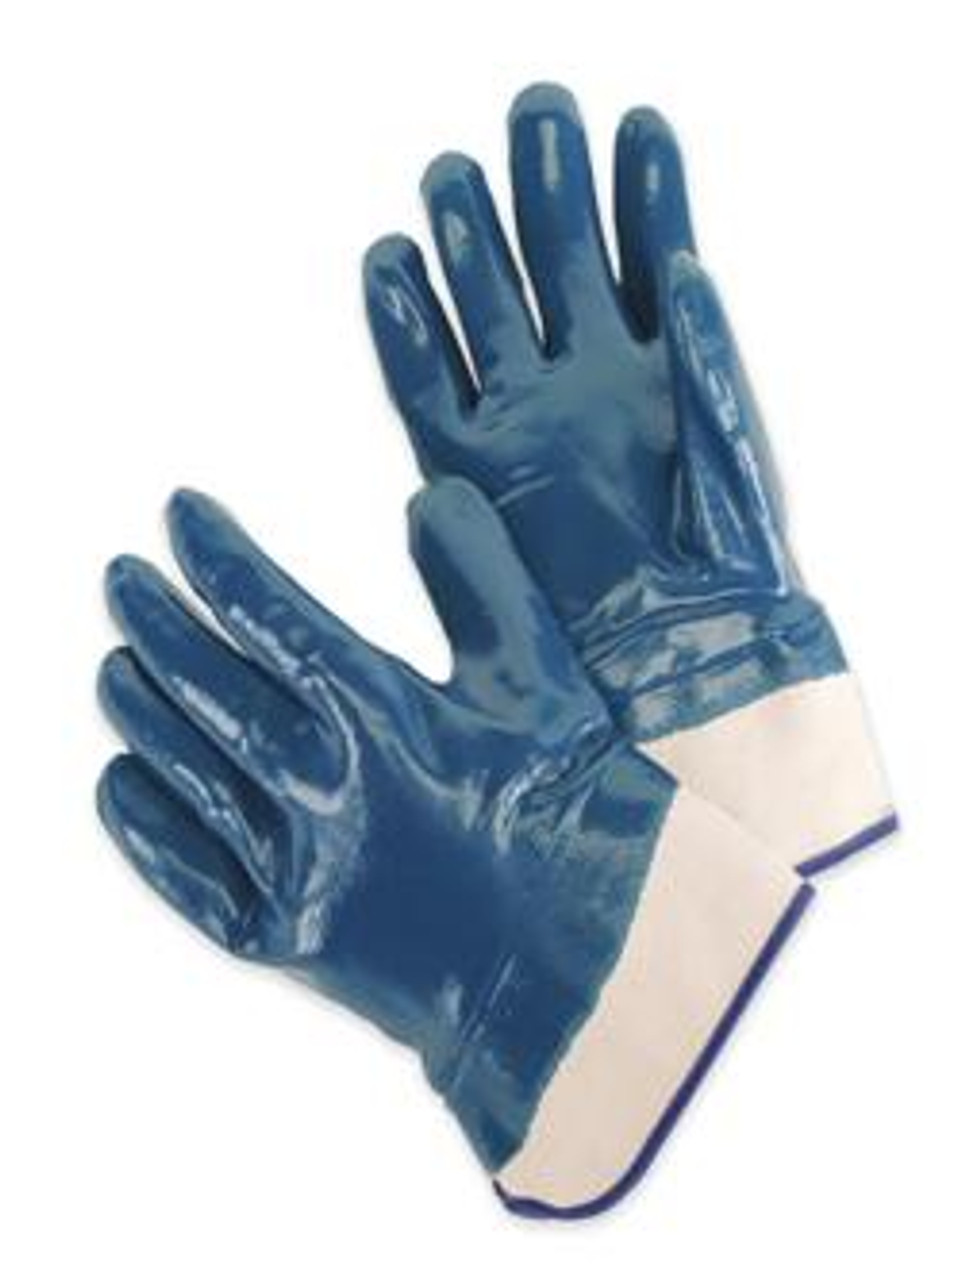 Heavy Duty Nitrile Supported Chemical Resistant Gloves  ## 9460SP ##